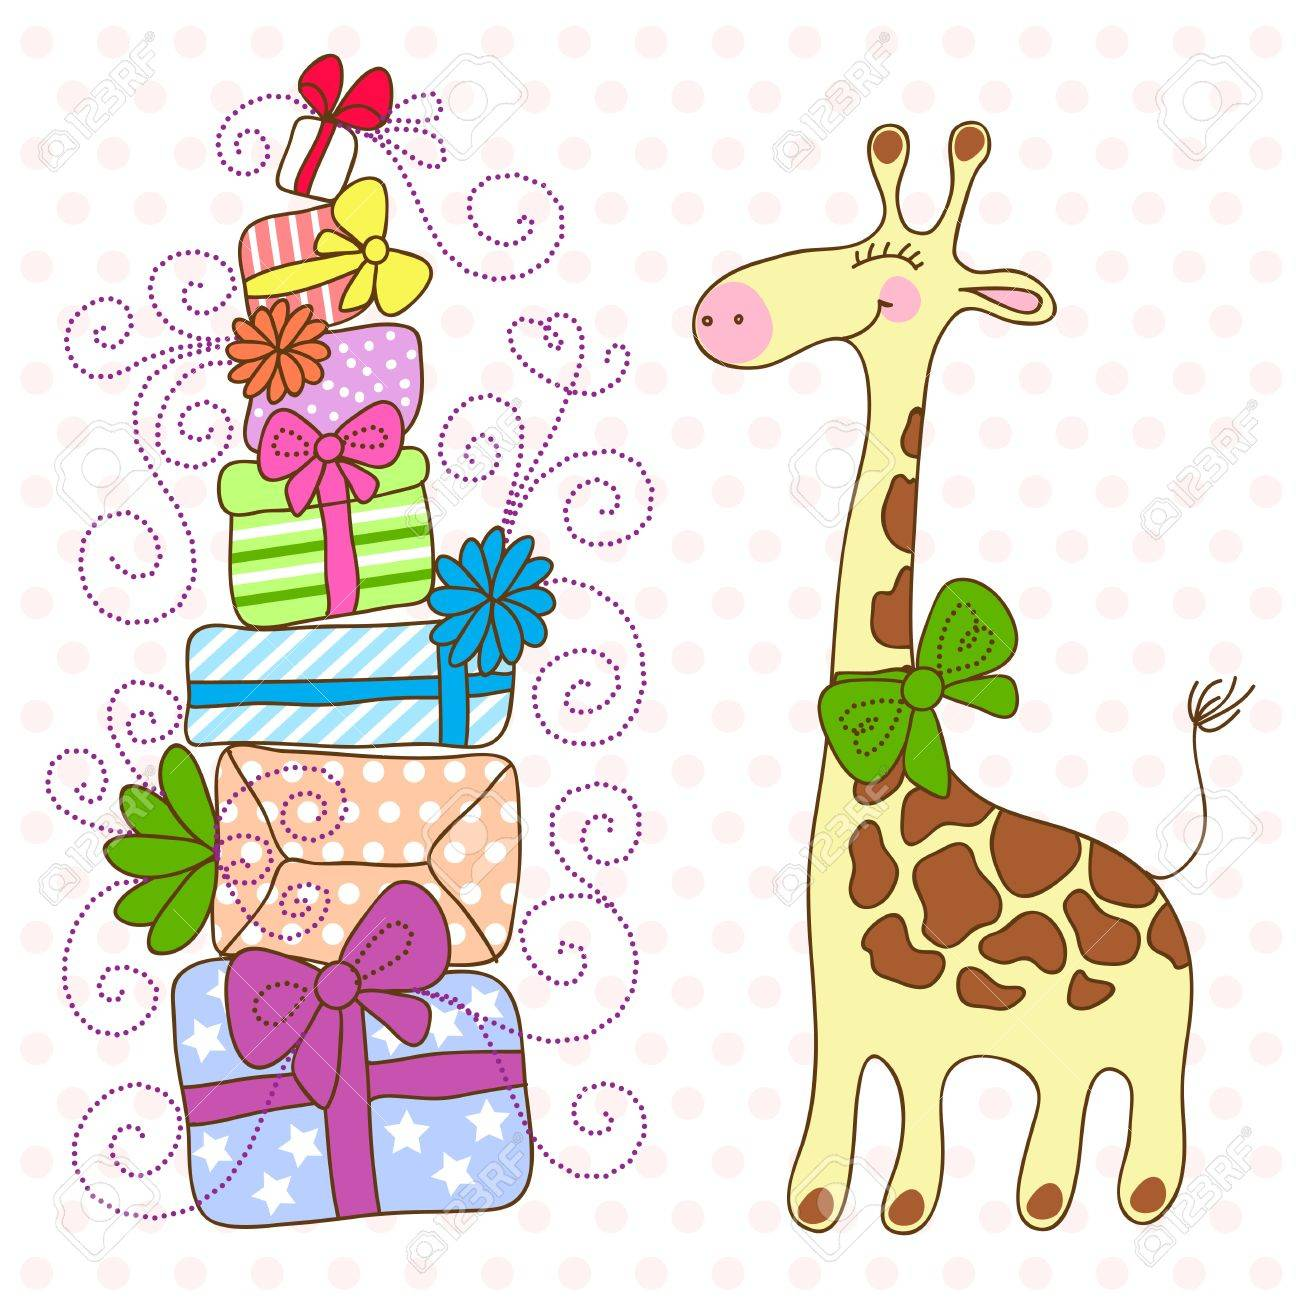 Cute Giraffe with a lot of gifts Stock Vector - 14935865